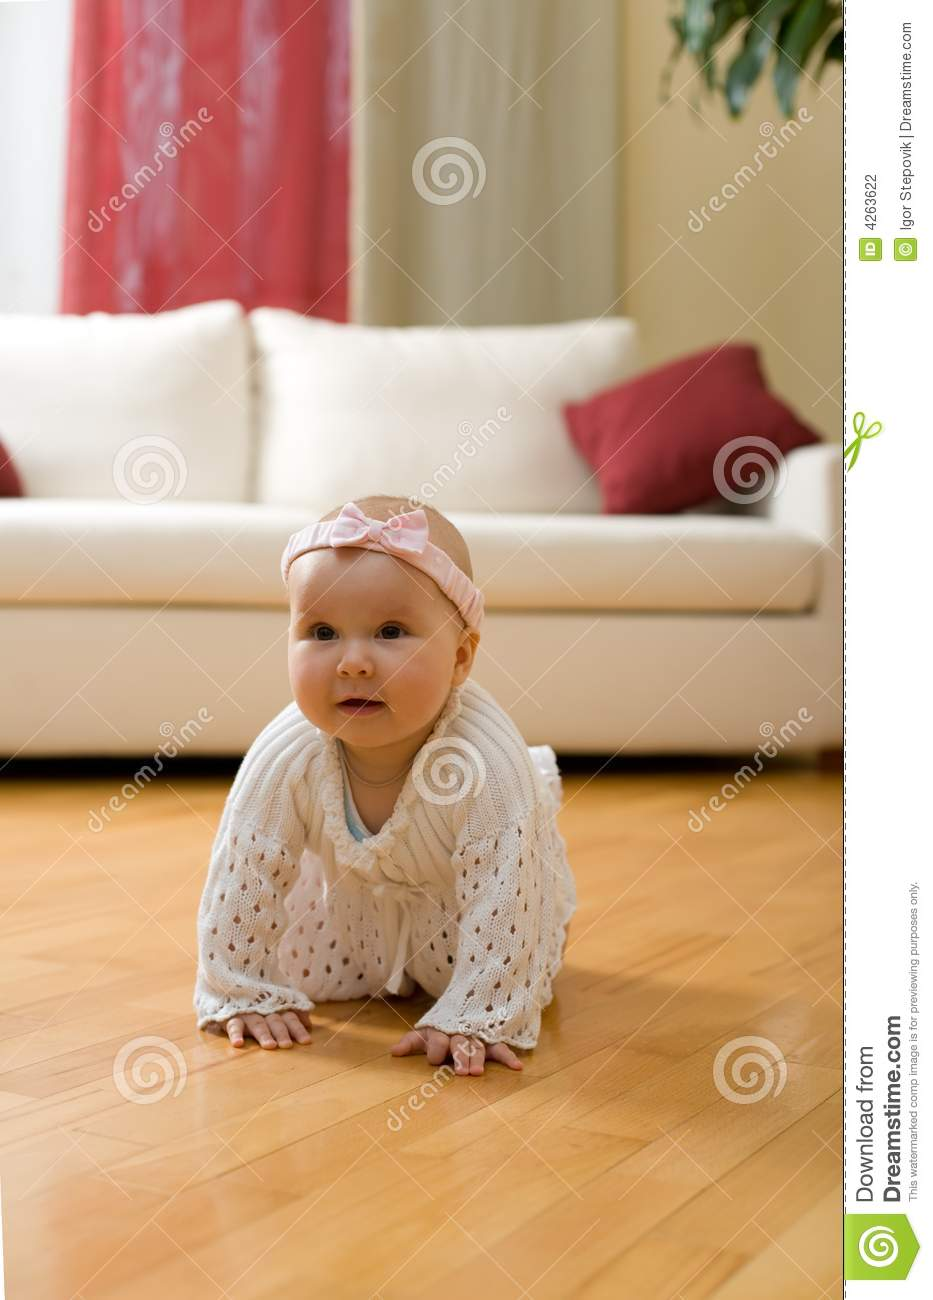 Baby Girl Crawling On A Floor Stock Photography Image